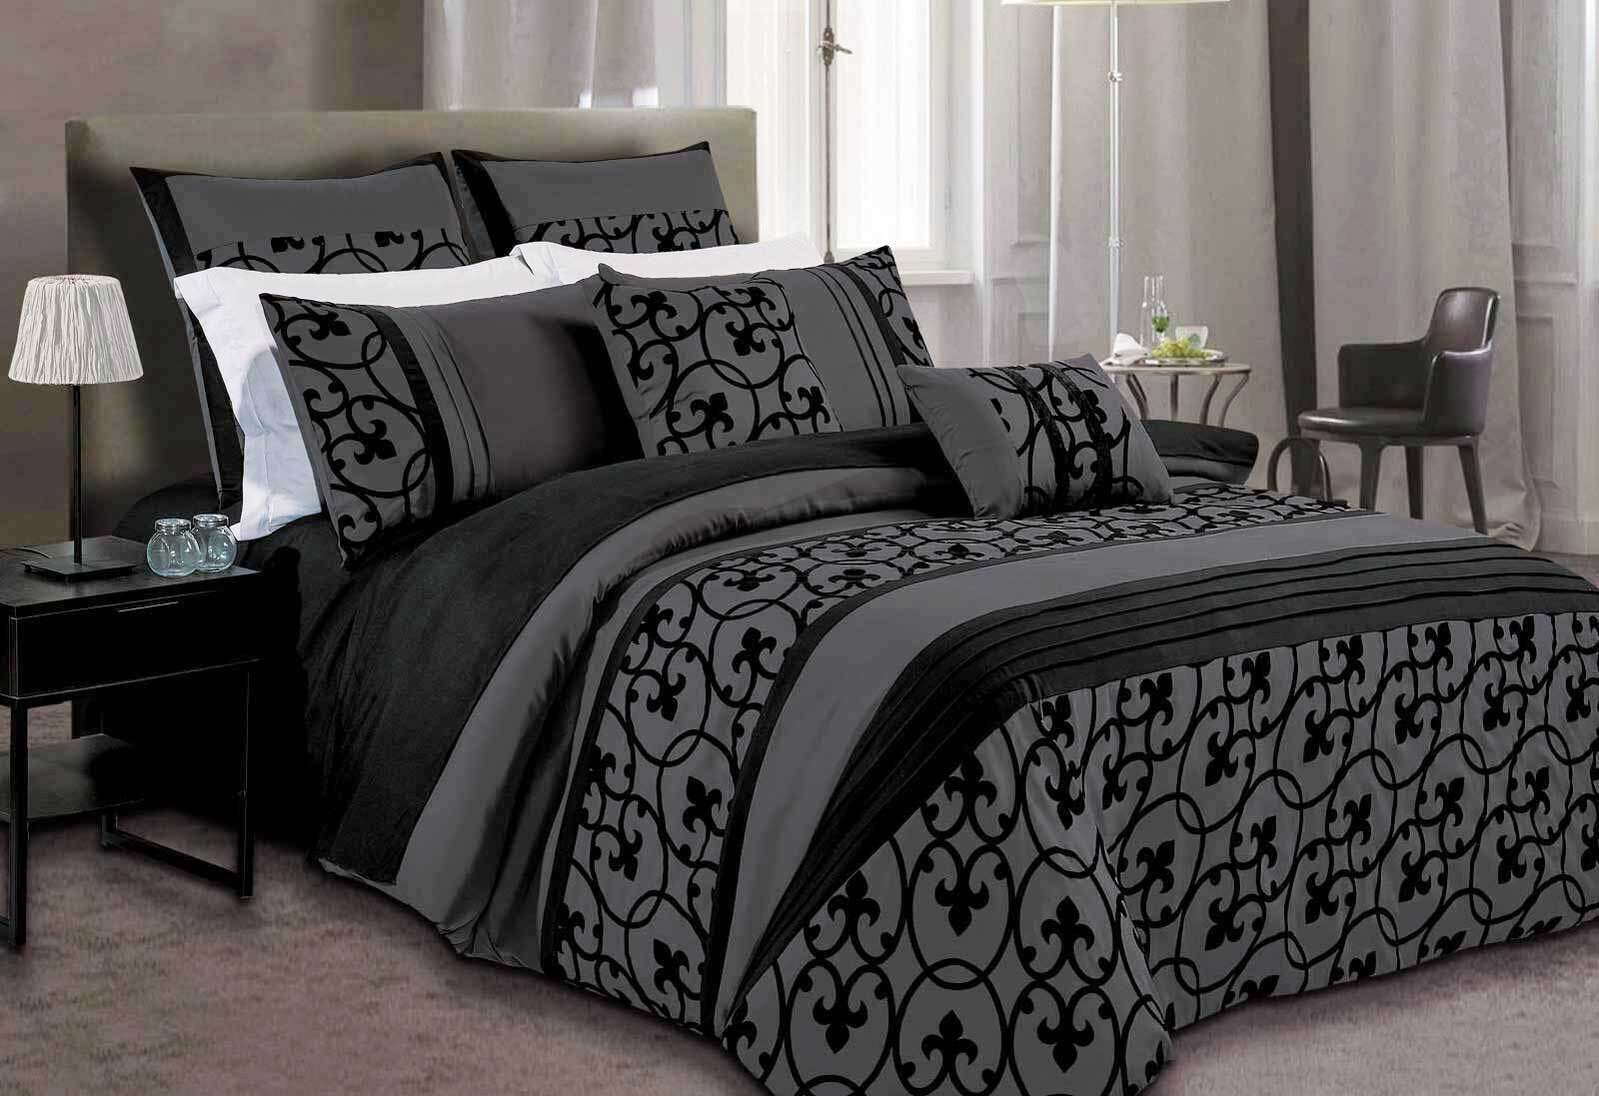 Lowest Price Dursley Black Quilt Cover Set Doona Cover Set